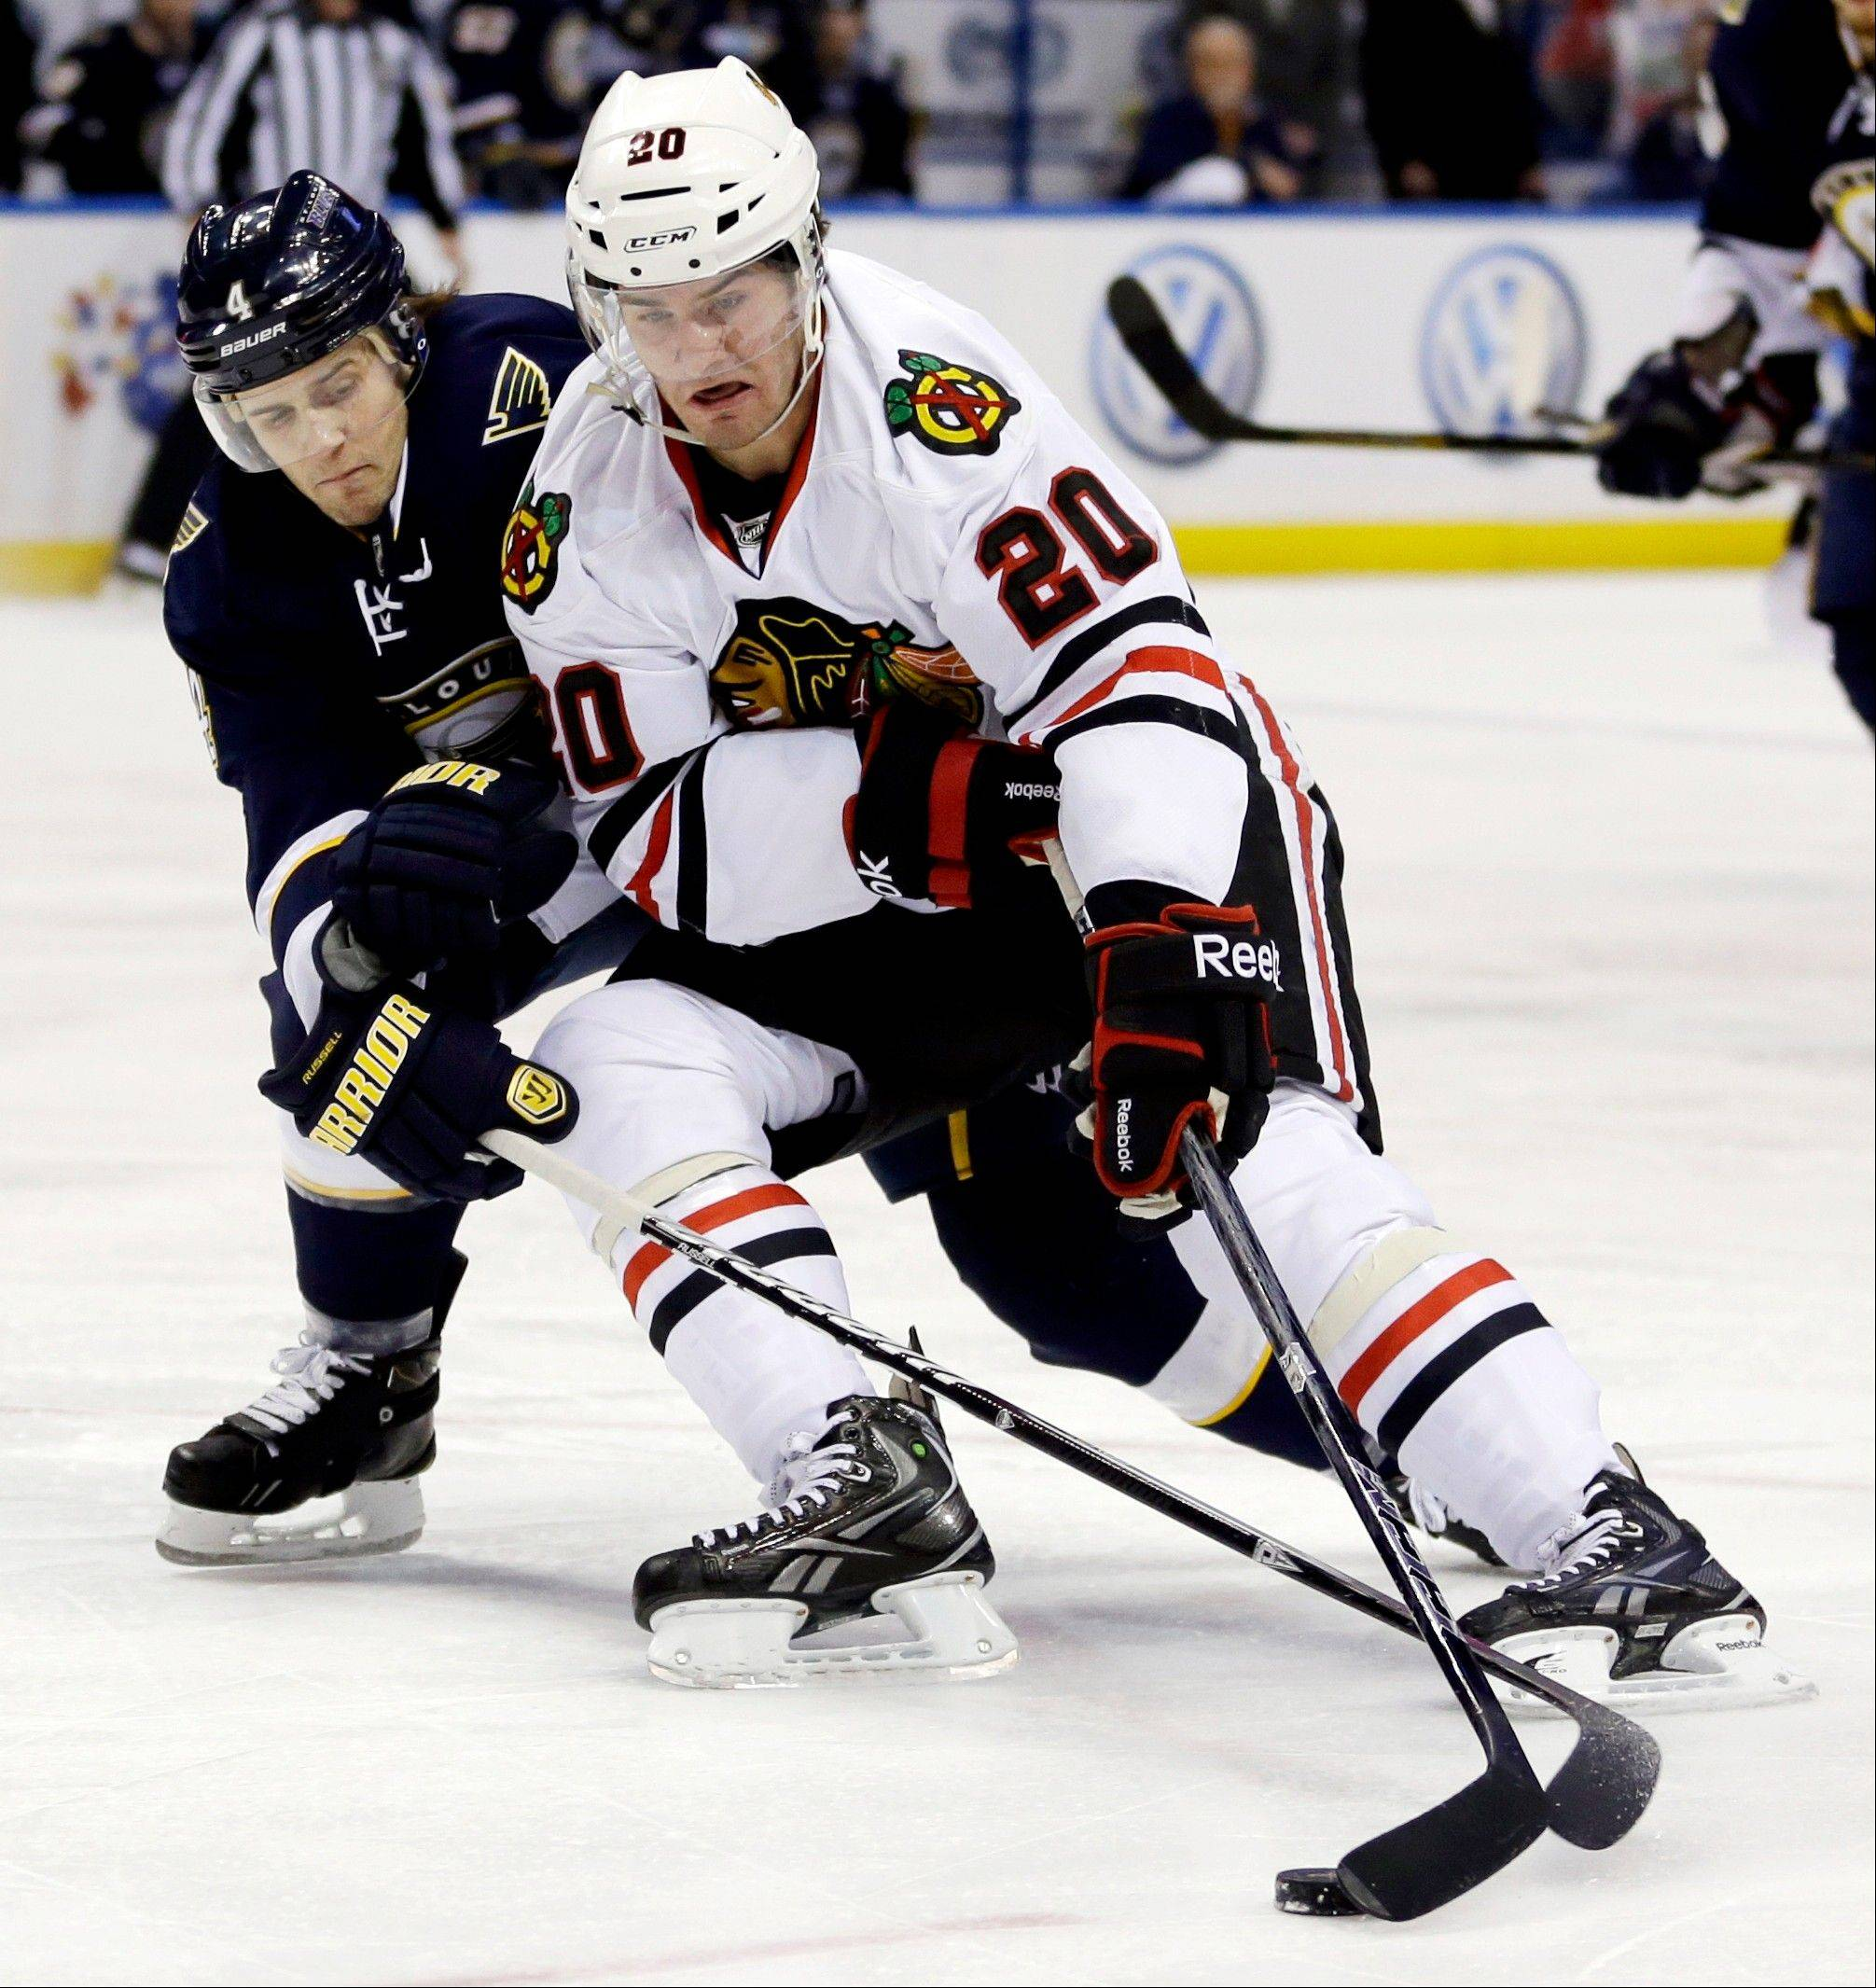 Chicago Blackhawks' Brandon Saad tries to slip past St. Louis Blues' Kris Russell during the first period.